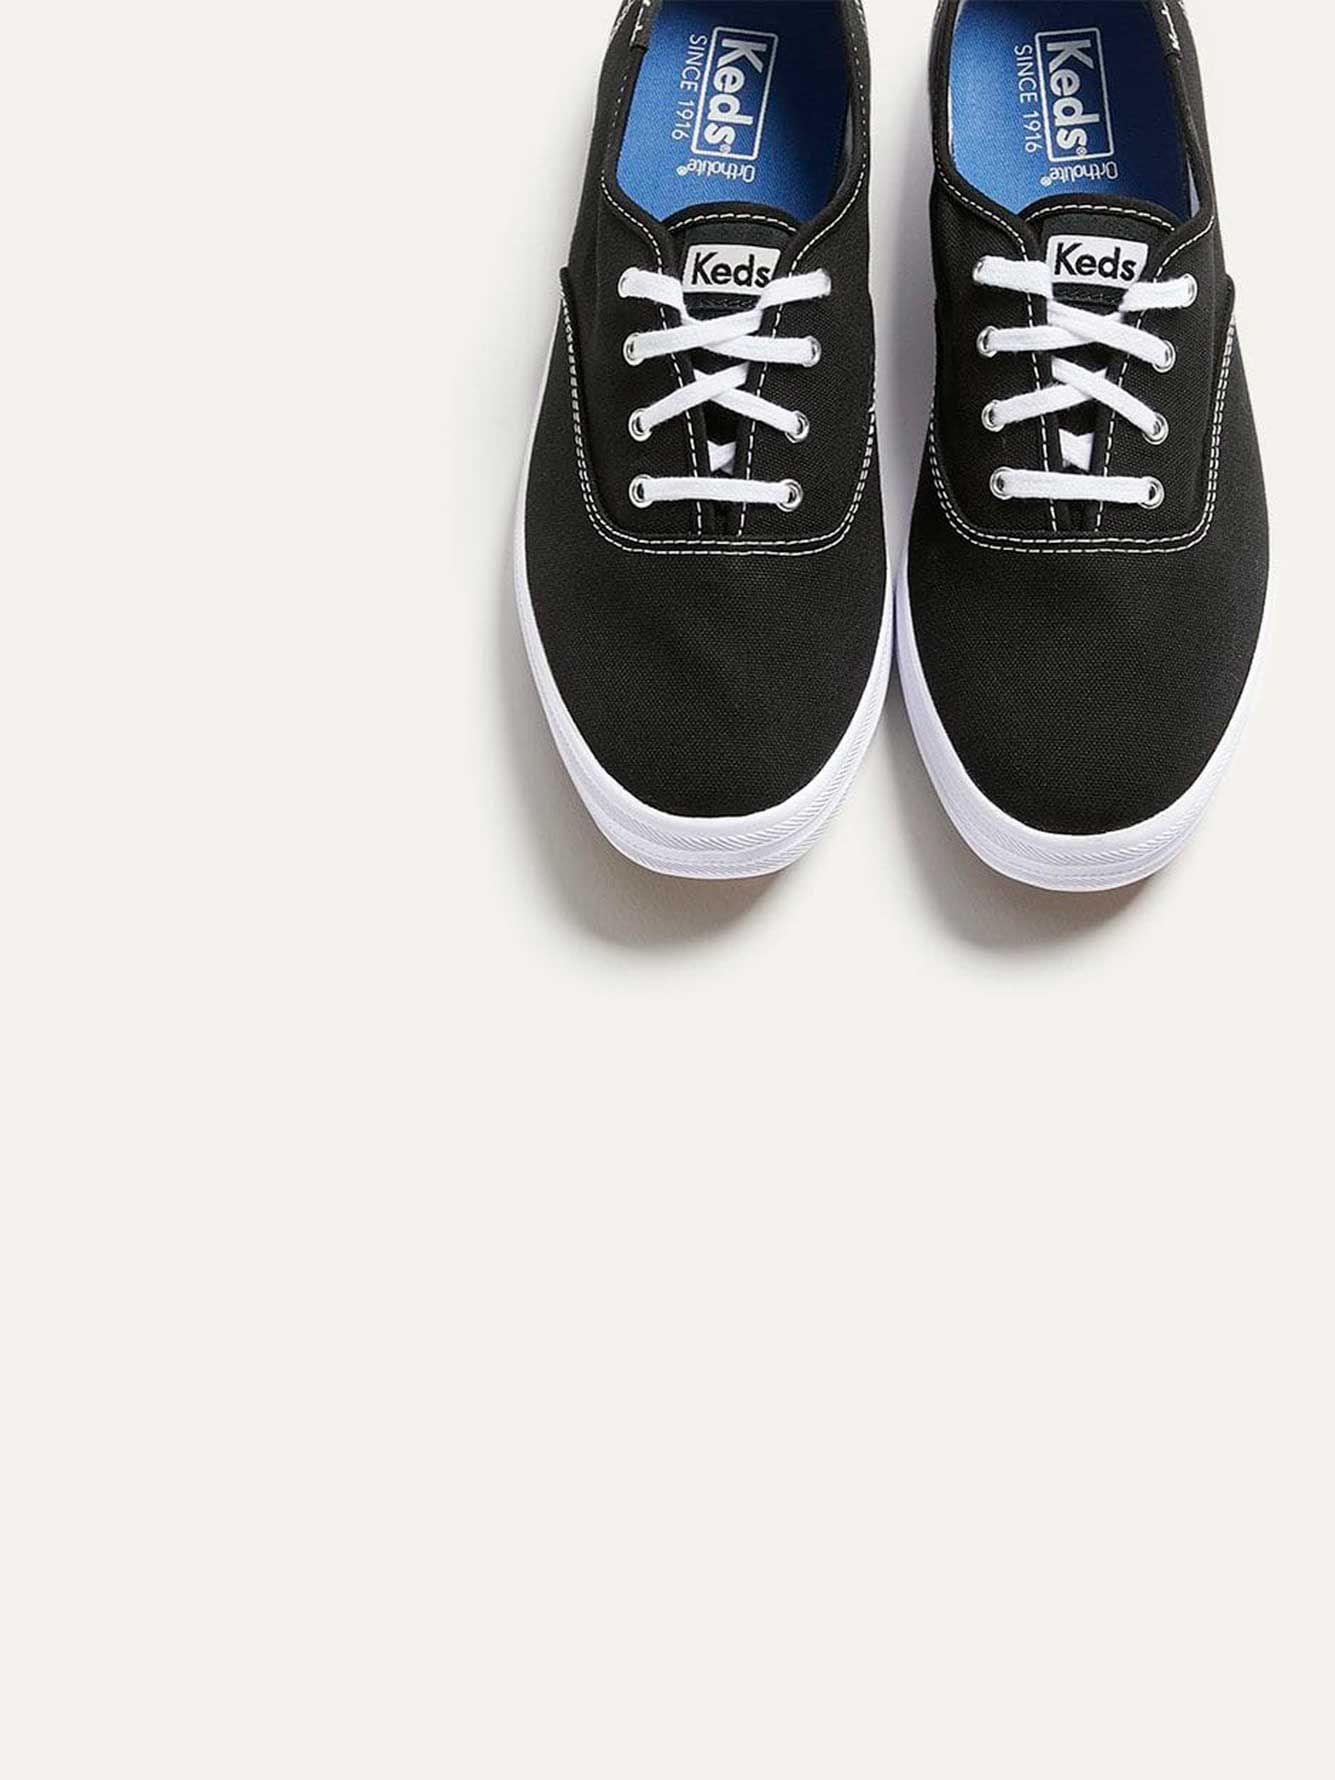 Chaussure en toile Champion Oxford, pied large - Keds